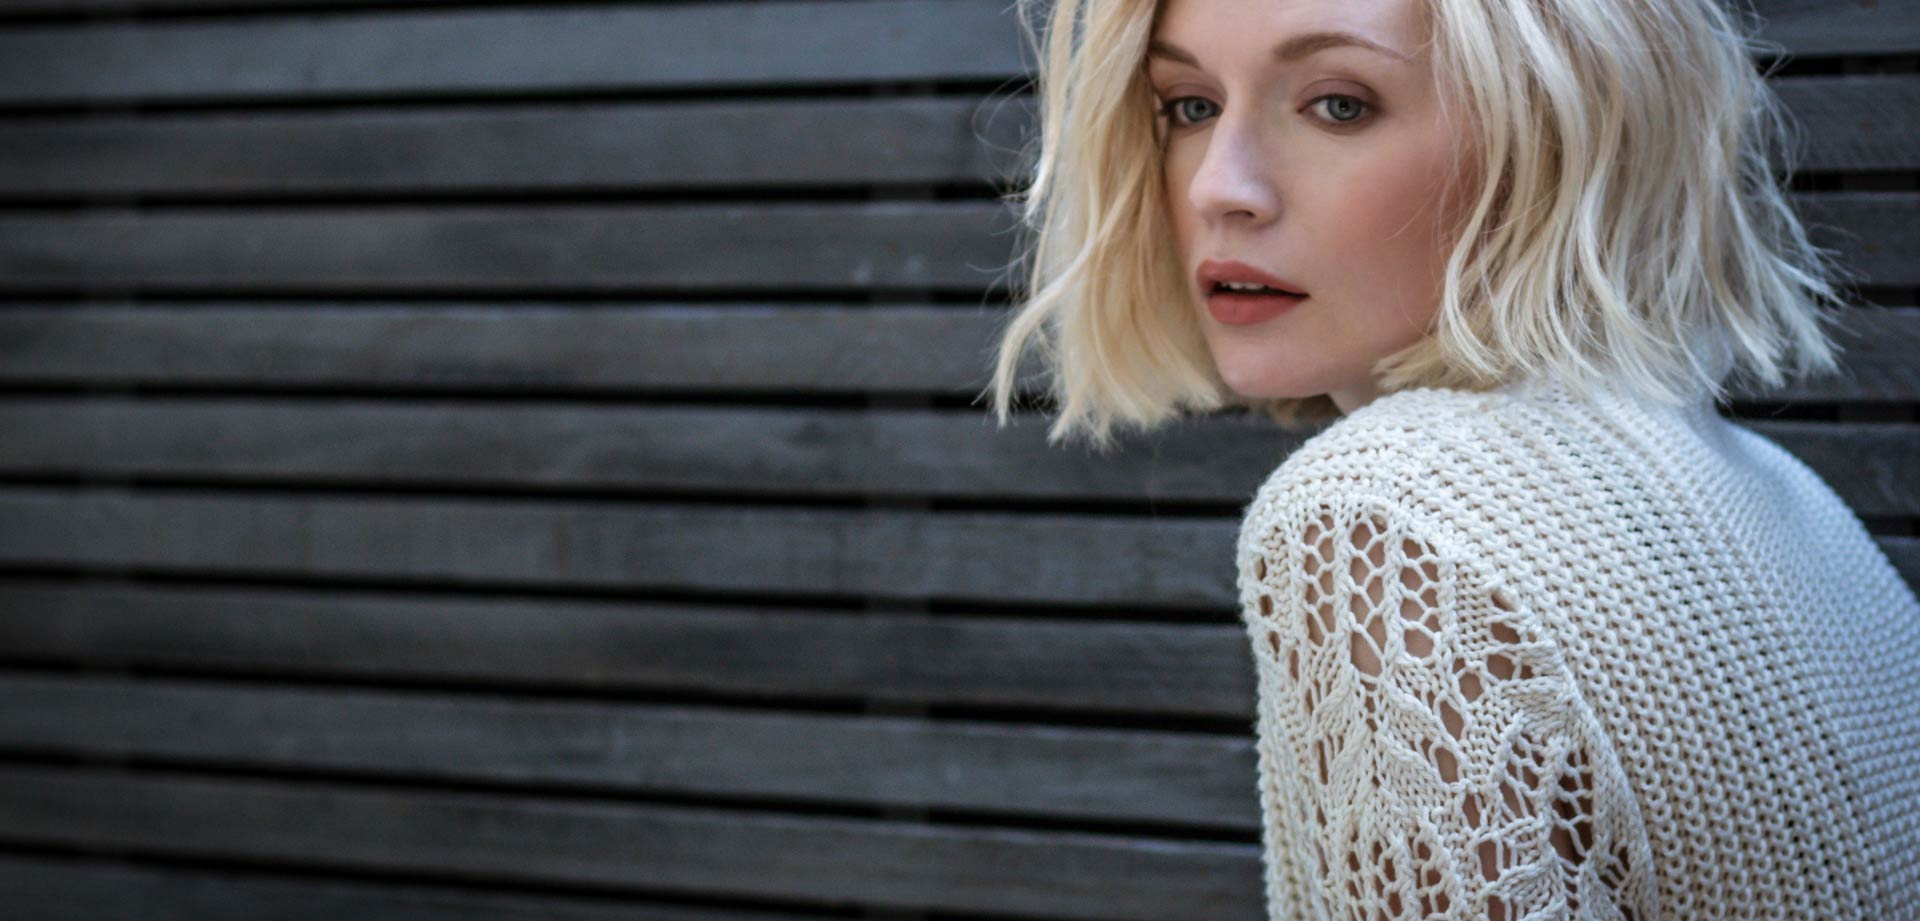 Womens sustainable clothing fashion line fall winter 2017